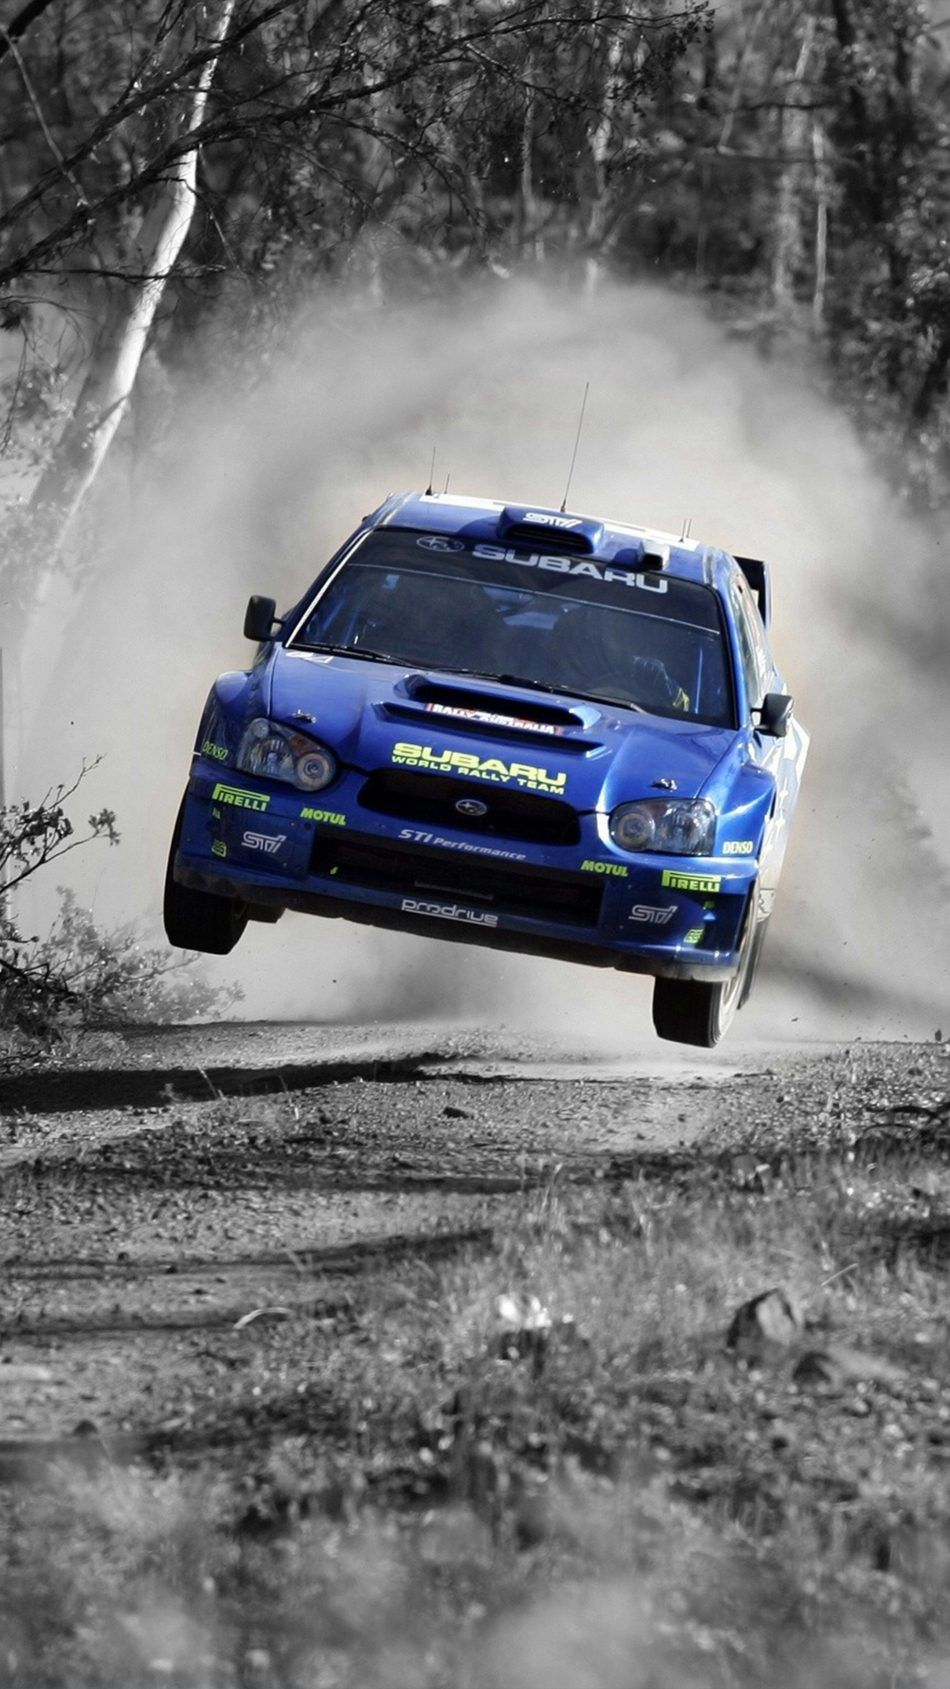 Car Racing Off Road Car Wallpapers Subaru Rally Car Wallpapers